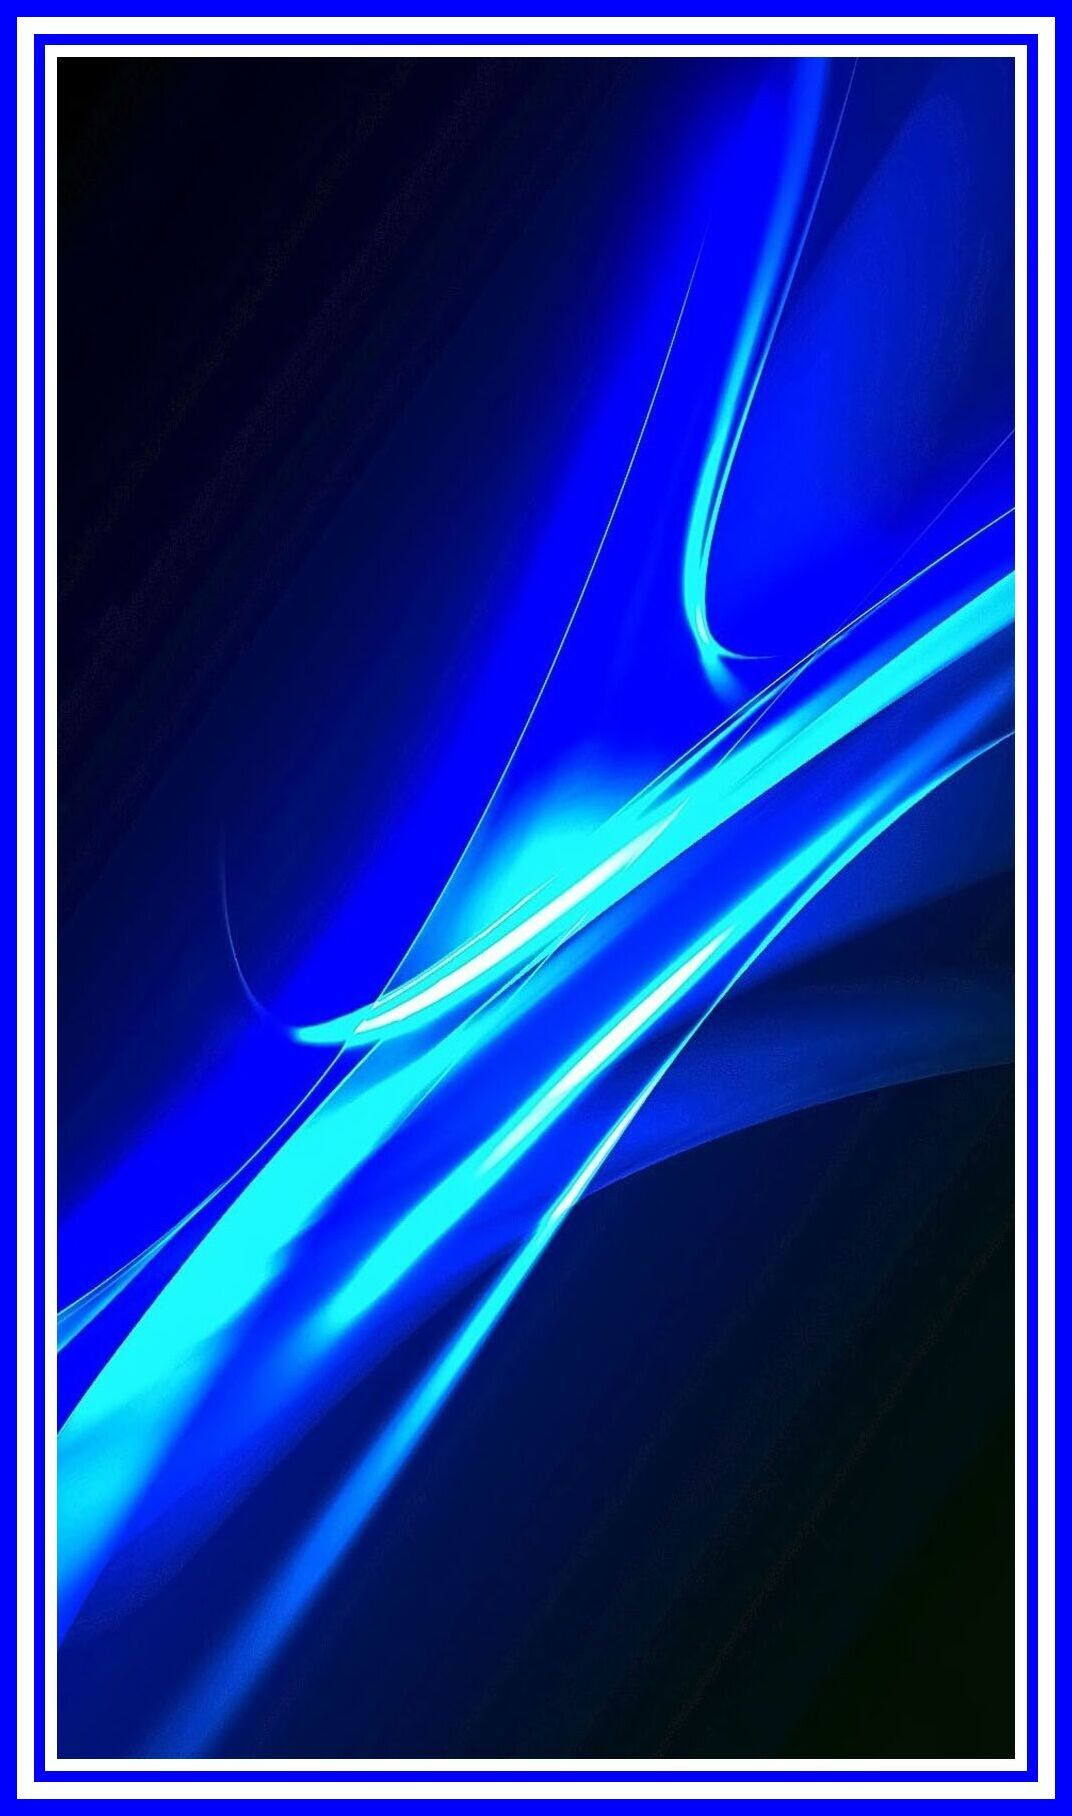 44 reference of light Fondos azul in 2020 Blue neon